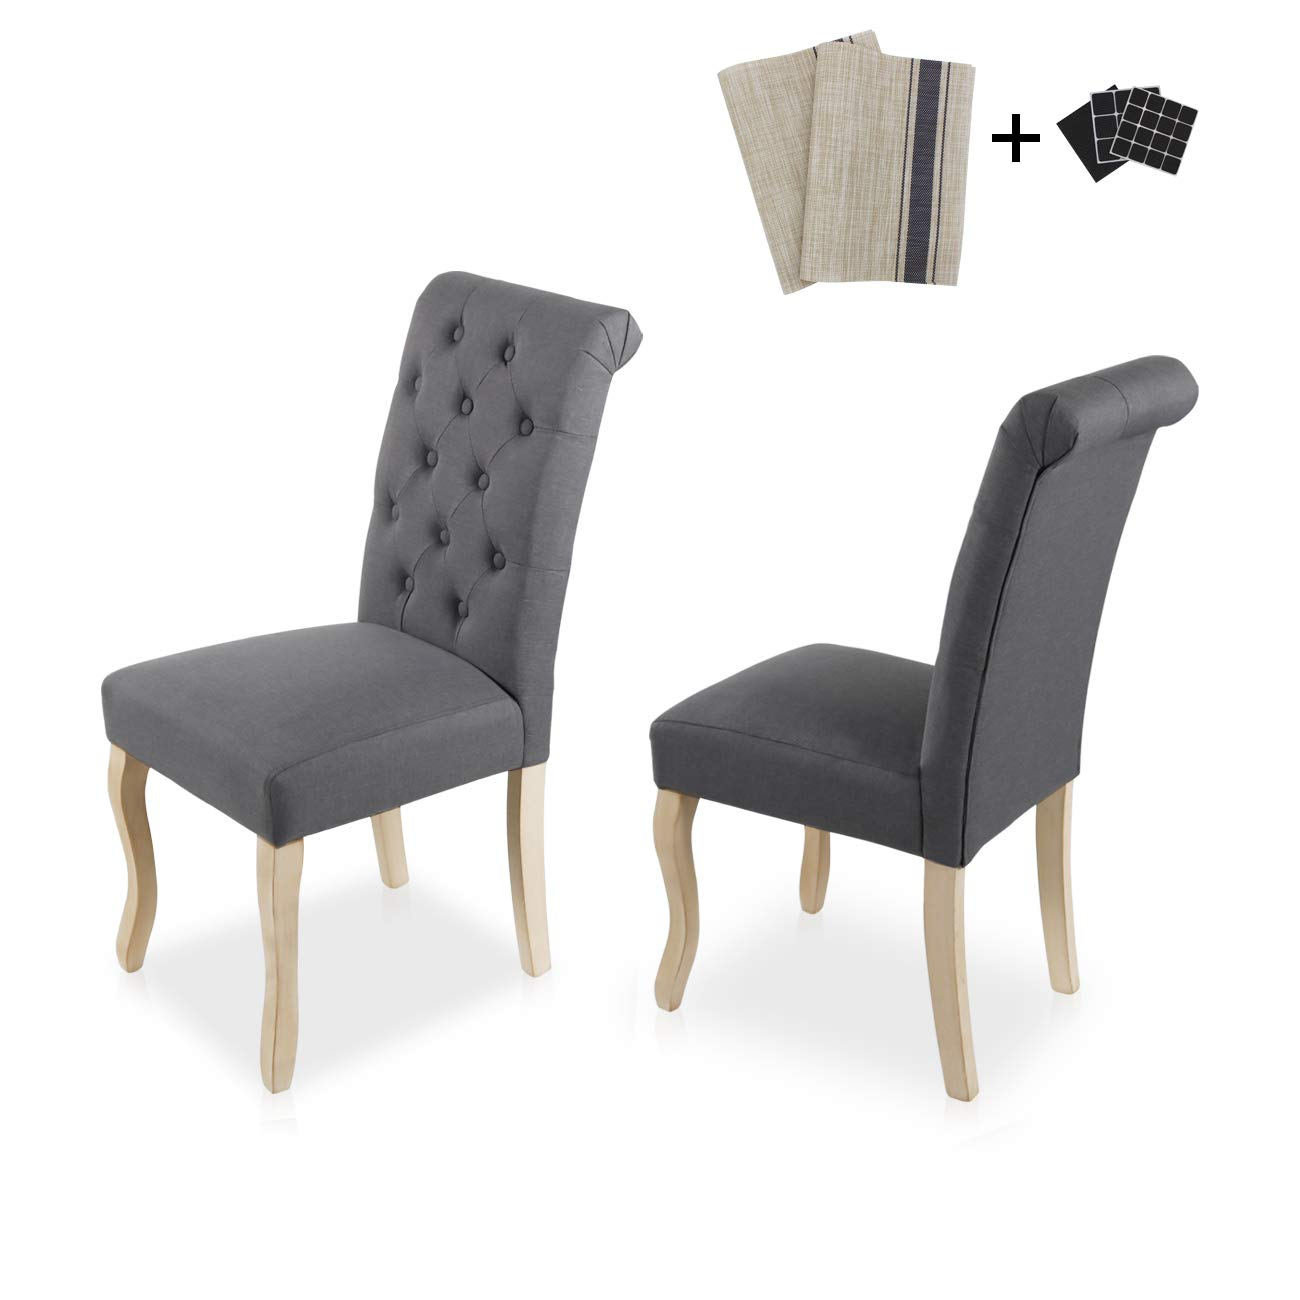 Amazon com aodailihb dining chairs set of 2 solid wood high back dining chair fabric padding oak legs classic durable grey chairs